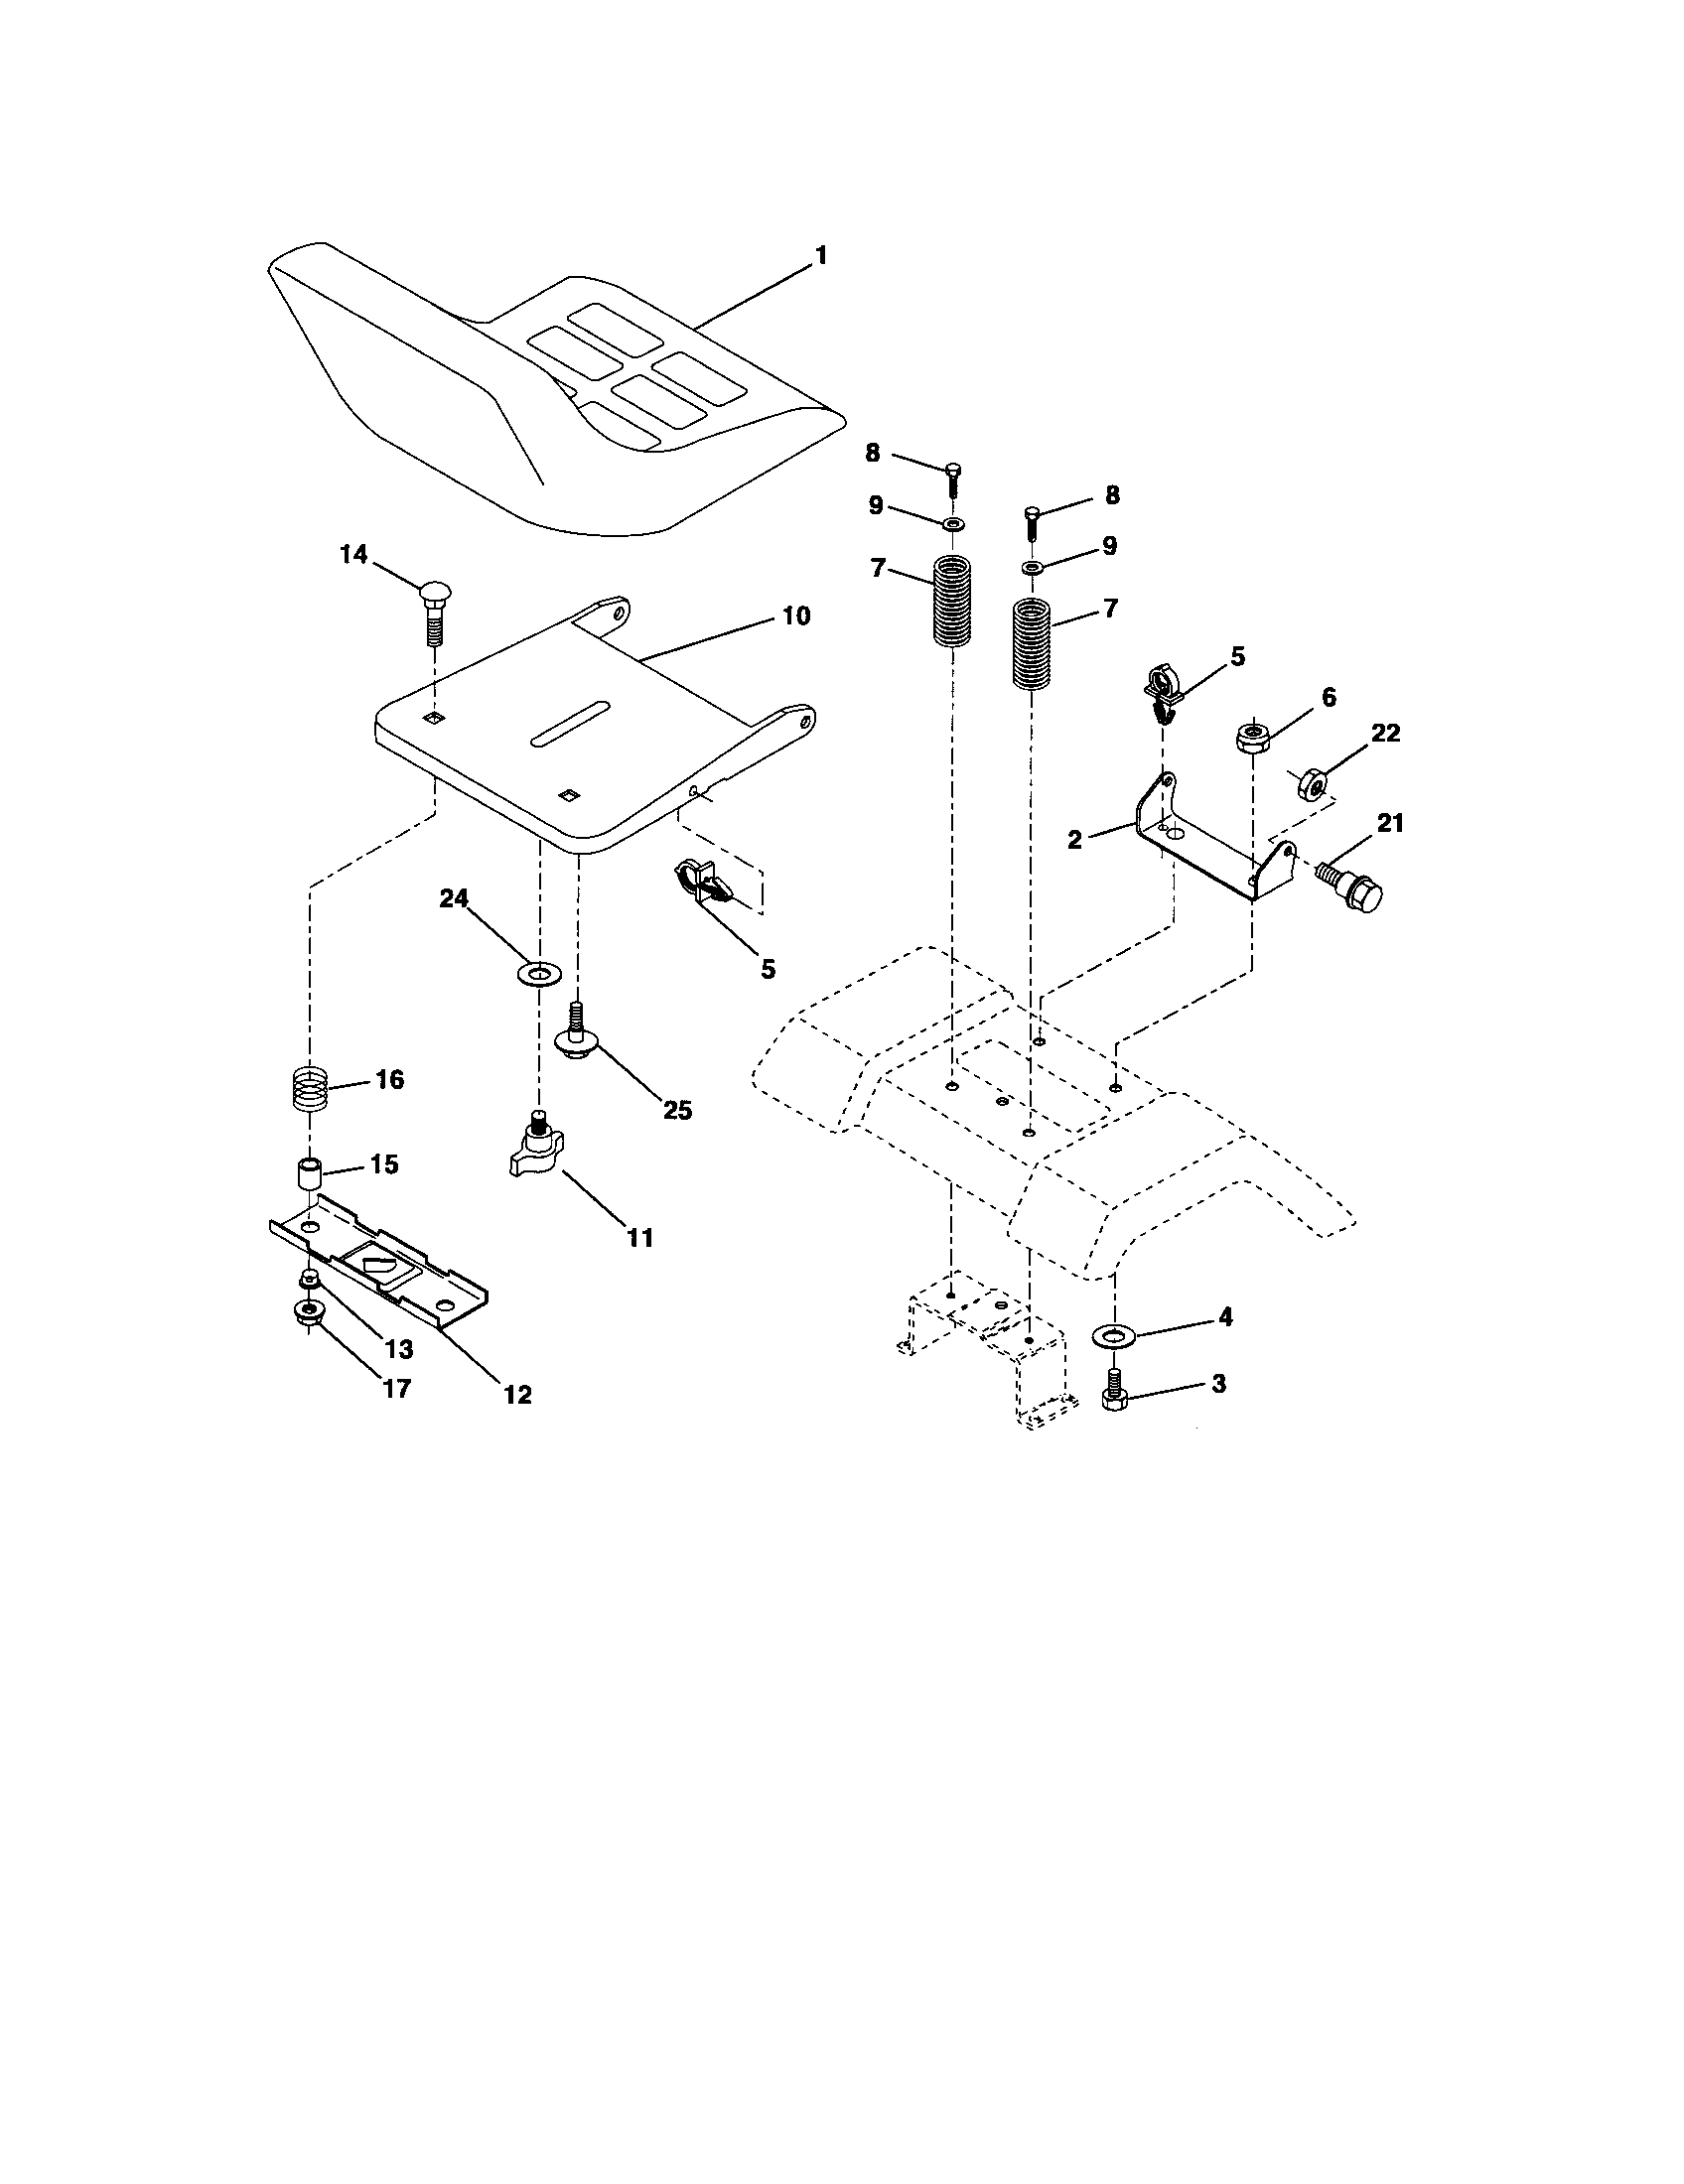 Craftsman 917275820 seat assembly diagram